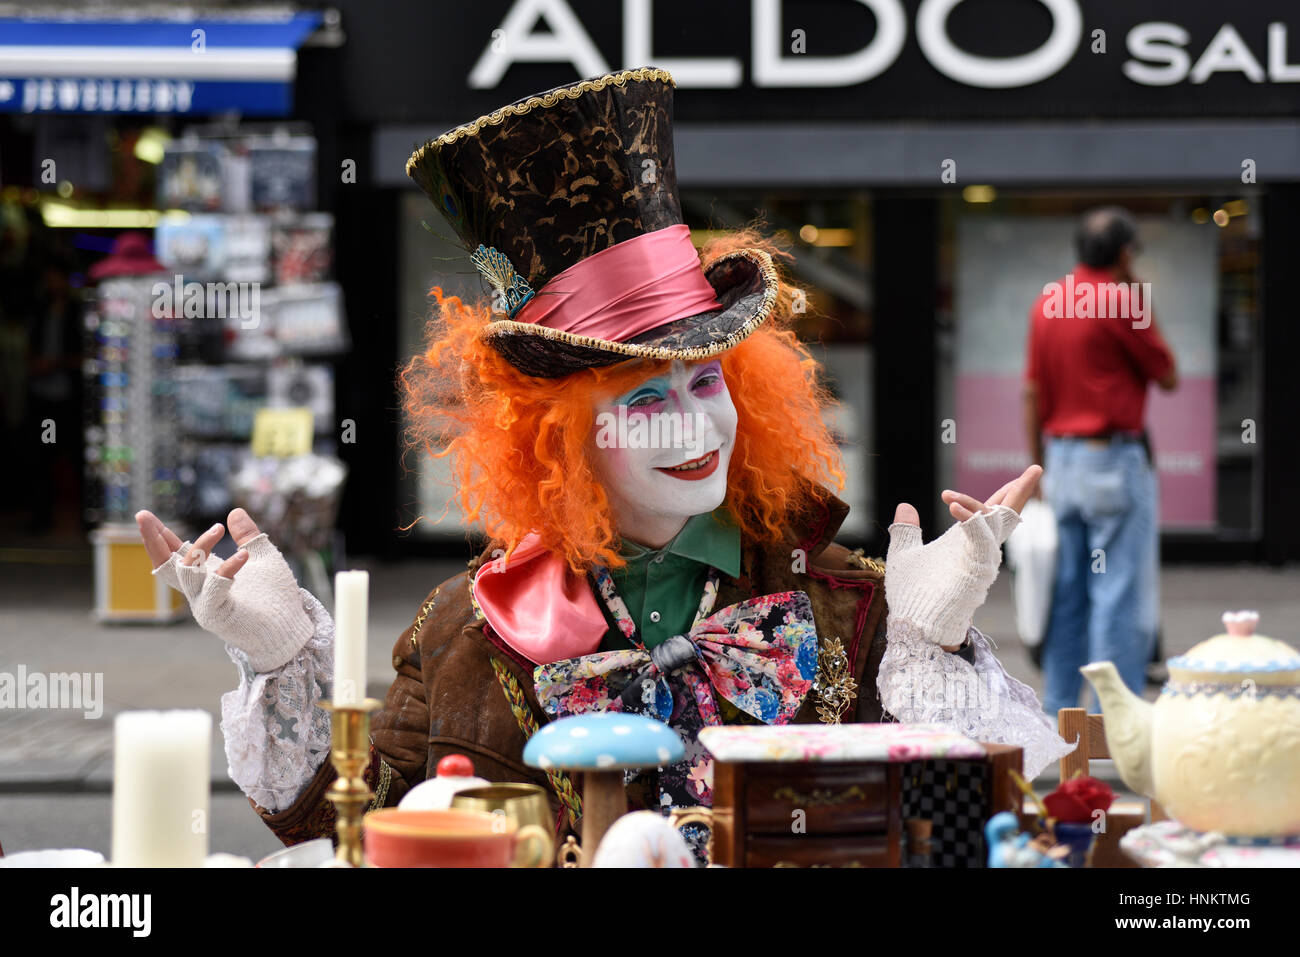 The Mad Hatter sitting at the tea table in Camden, London. - Stock Image